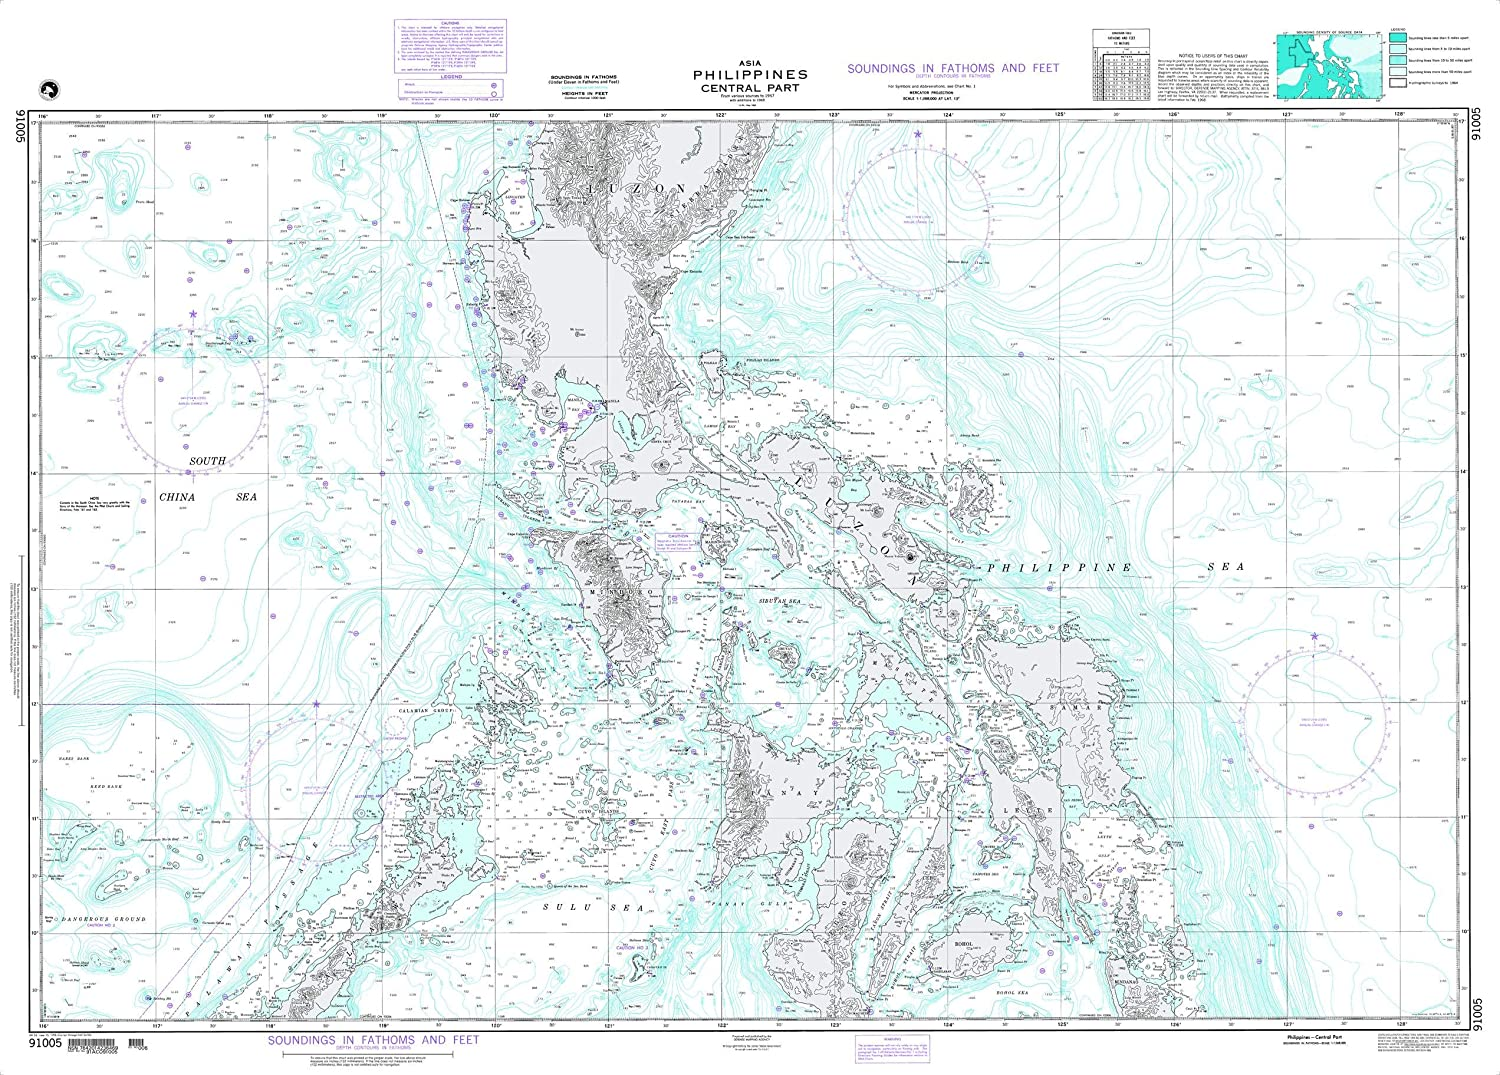 NGA Chart 91005 Philippines Central Part 53  x 38  Paper Chart